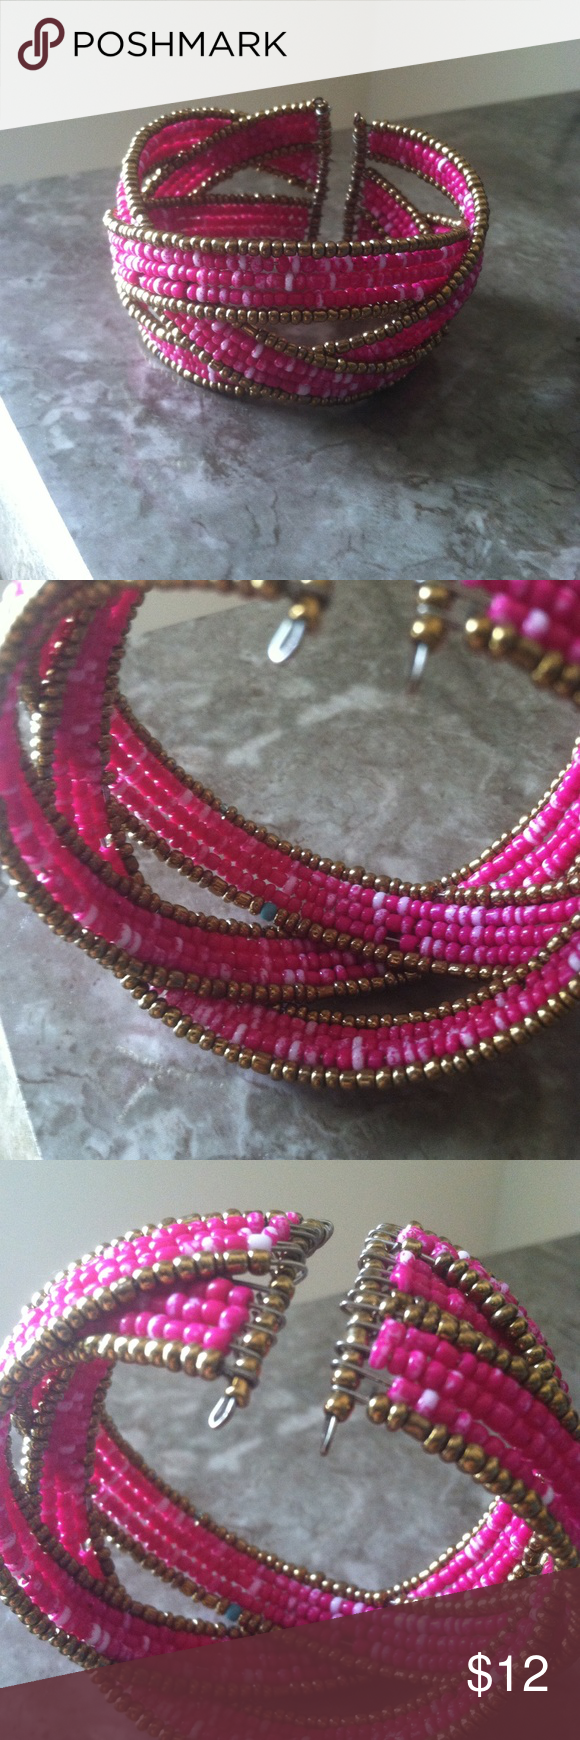 Pink and gold bracelet Beautiful bracelet!! Wonderful colors!! There's one rebel blue bead as shown in picture, but it is not seen when worn!! Jewelry Bracelets